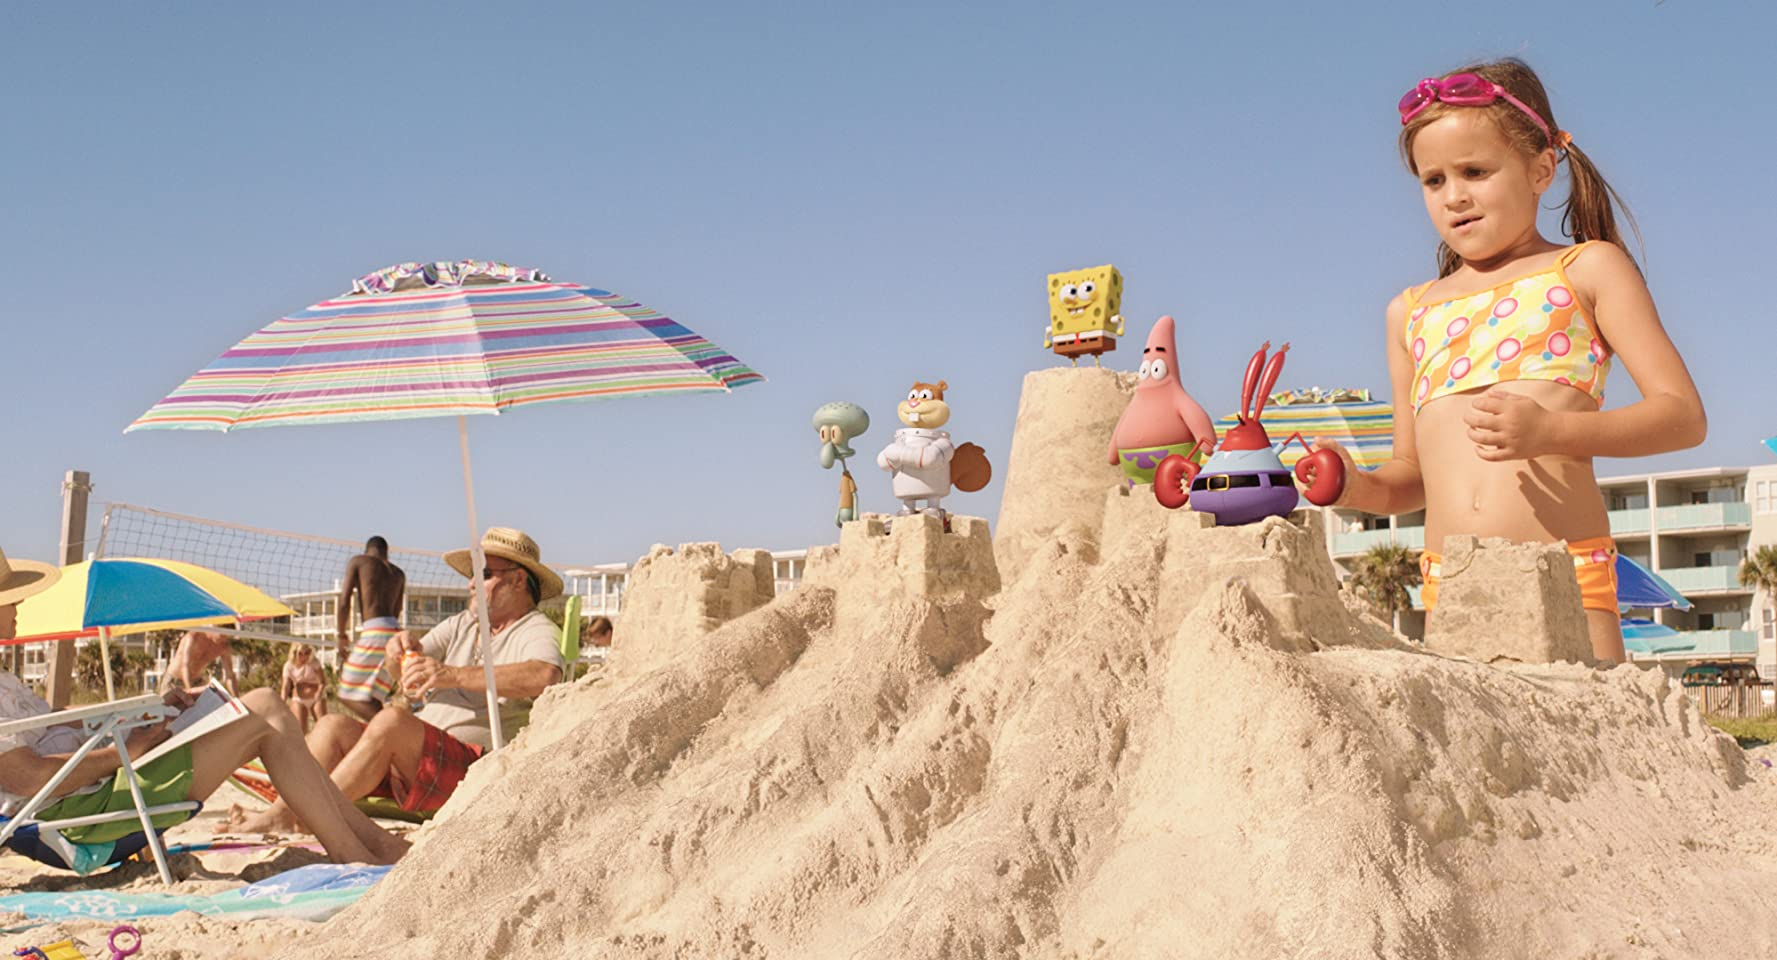 Bob Esponja: Un héroe fuera del agua (The SpongeBob Movie: Sponge Out of Water)